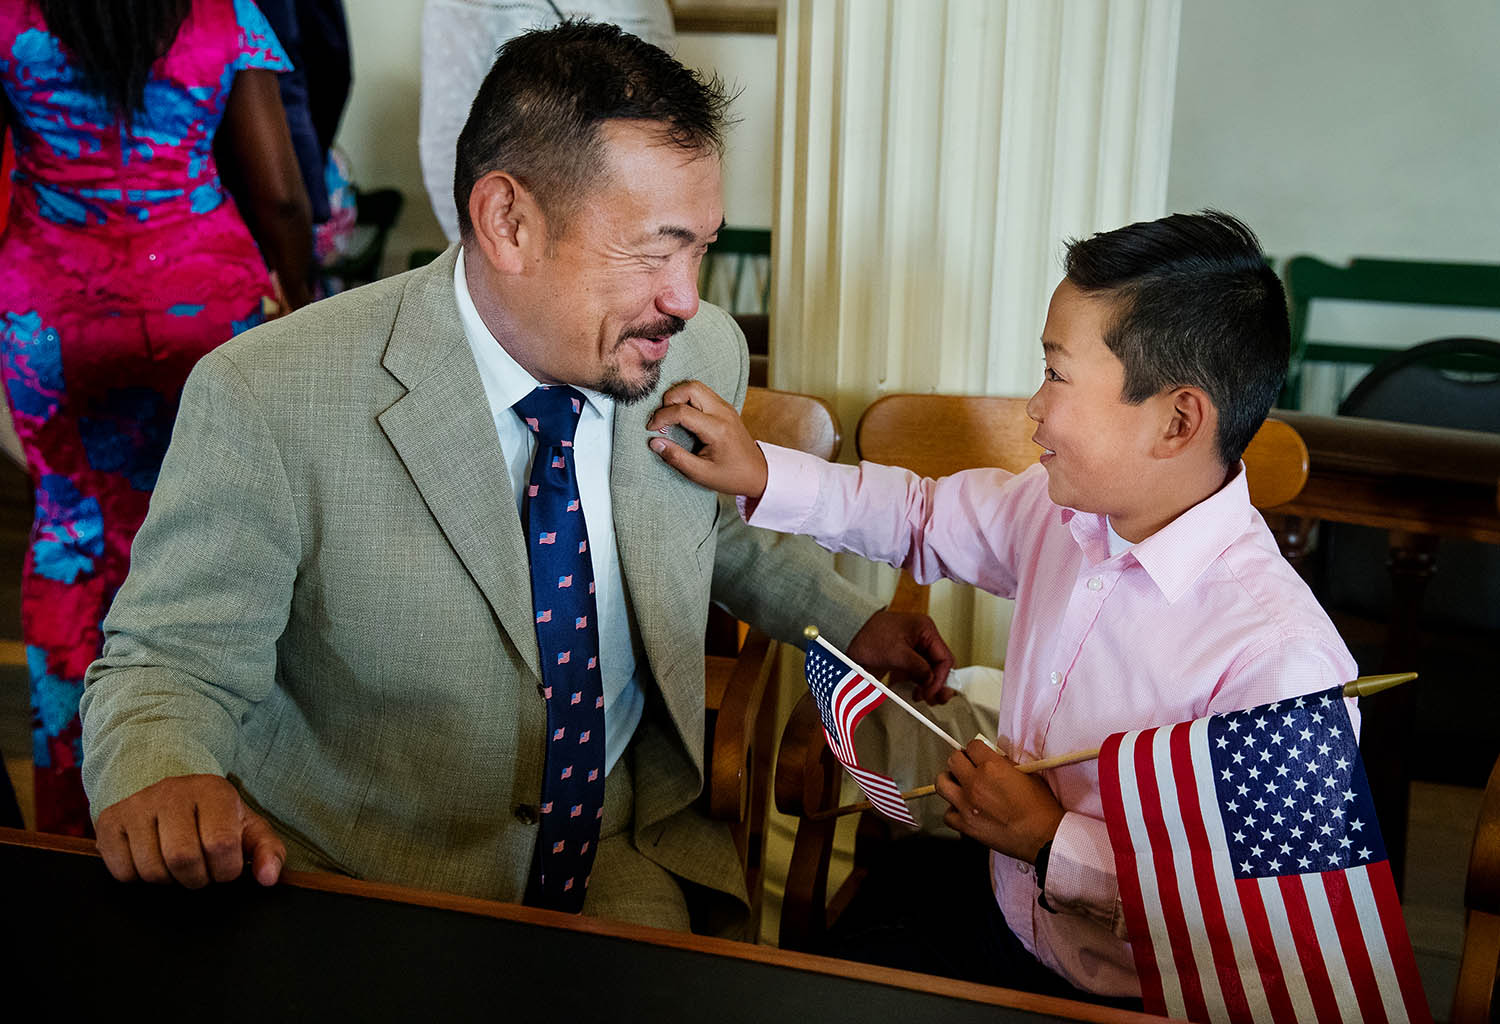 Toshi Maeda laughs as his son James investigates his U.S. flag lapel pin after a naturalization ceremony at the Old State Capitol Friday, June 14, 2019. Sixty-three new citizens were sworn-in during the ceremony. [Ted Schurter/The State Journal-Register]